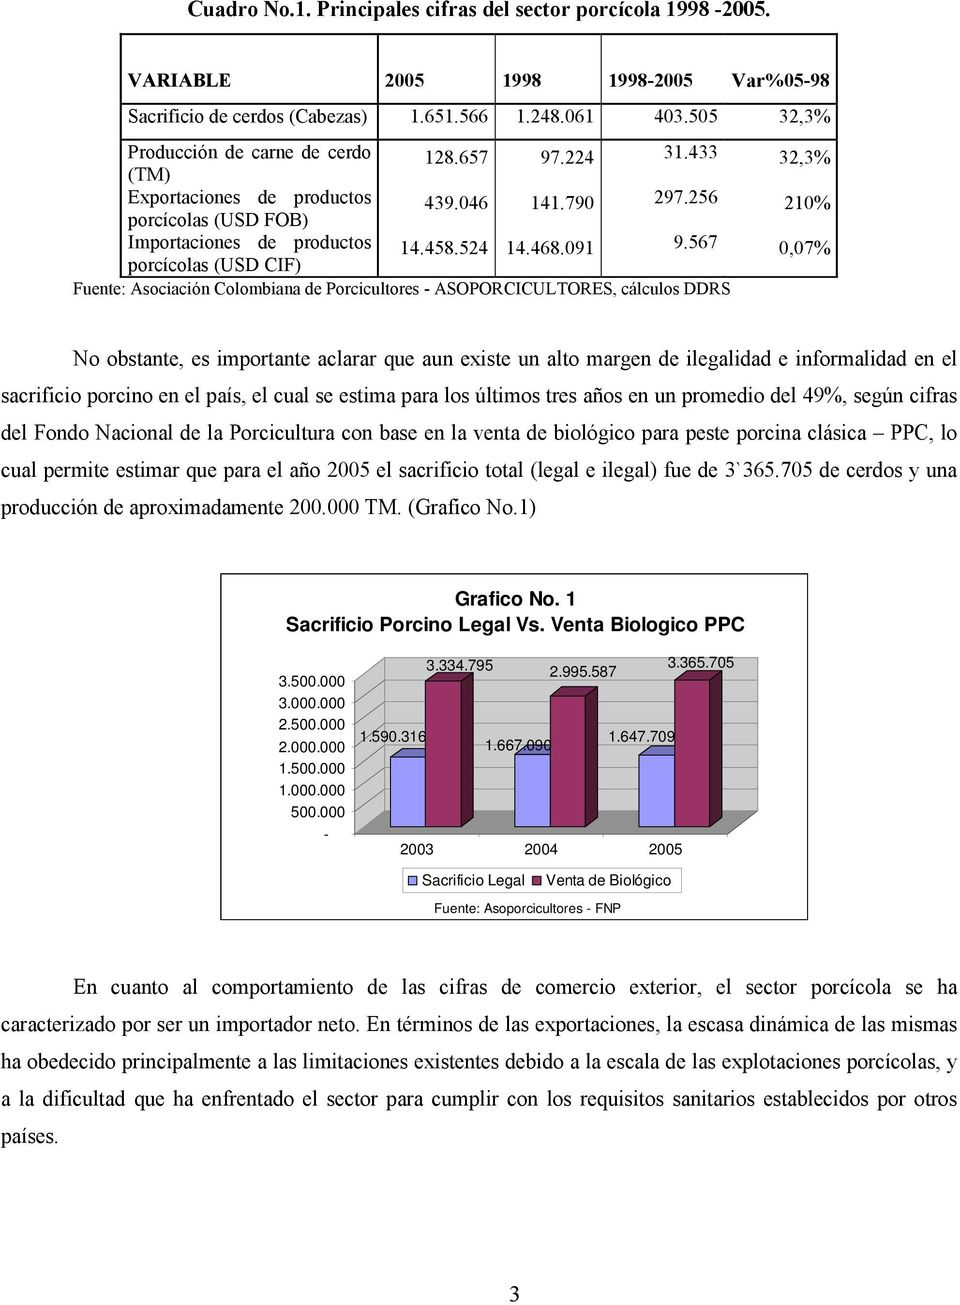 1 Sacrificio Porcino Legal Vs. Venta Biologico PPC 3.500.000 3.000.000 2.500.000 2.000.000 1.500.000 1.000.000 500.000-3.334.795 2.